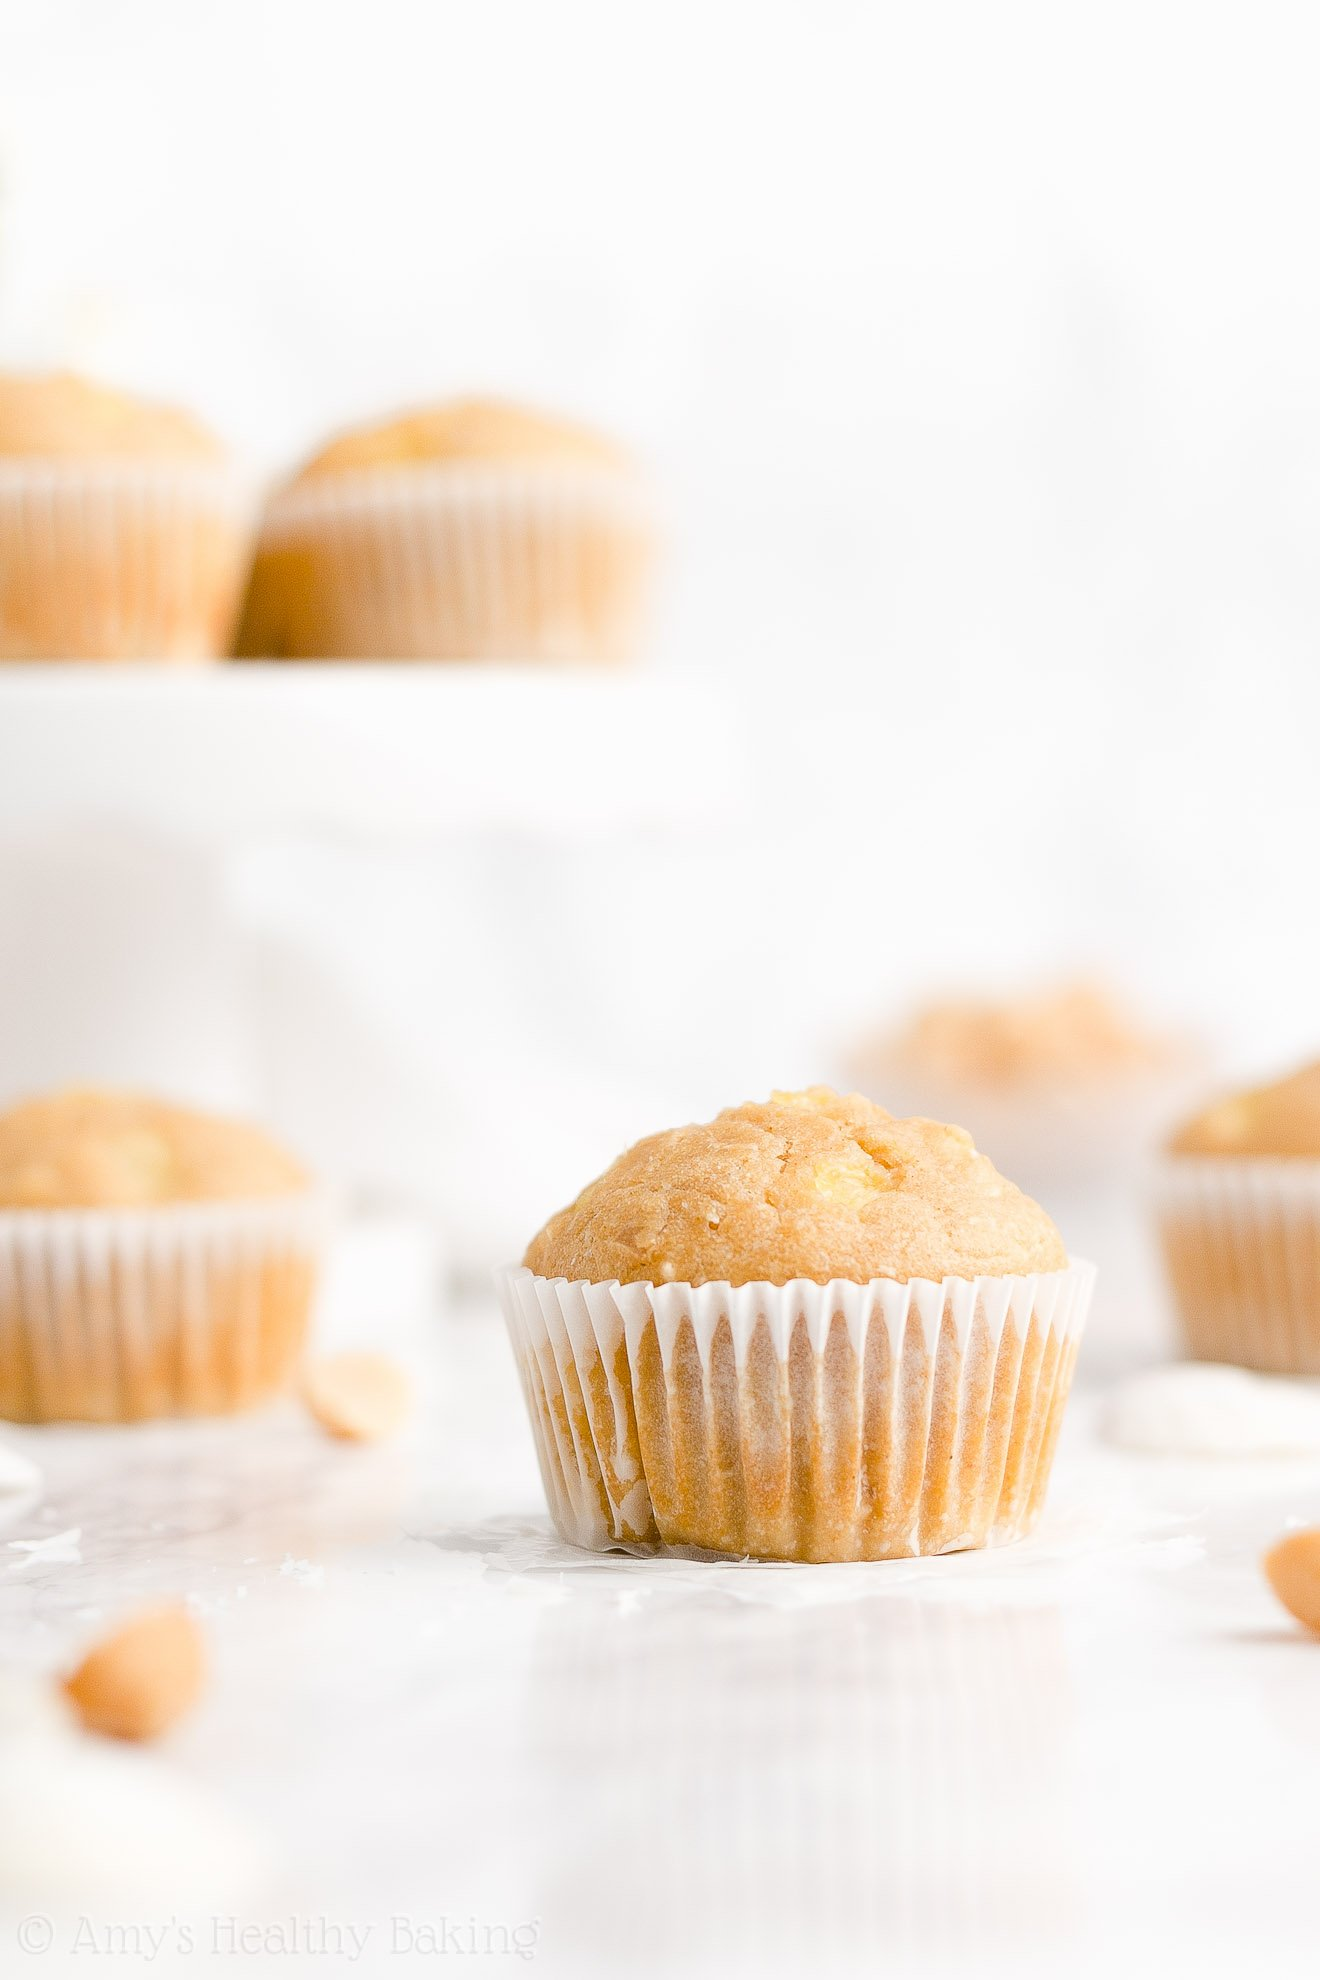 Easy Healthy Low Sugar Tropical Pineapple, Coconut & Macadamia Nut Muffins